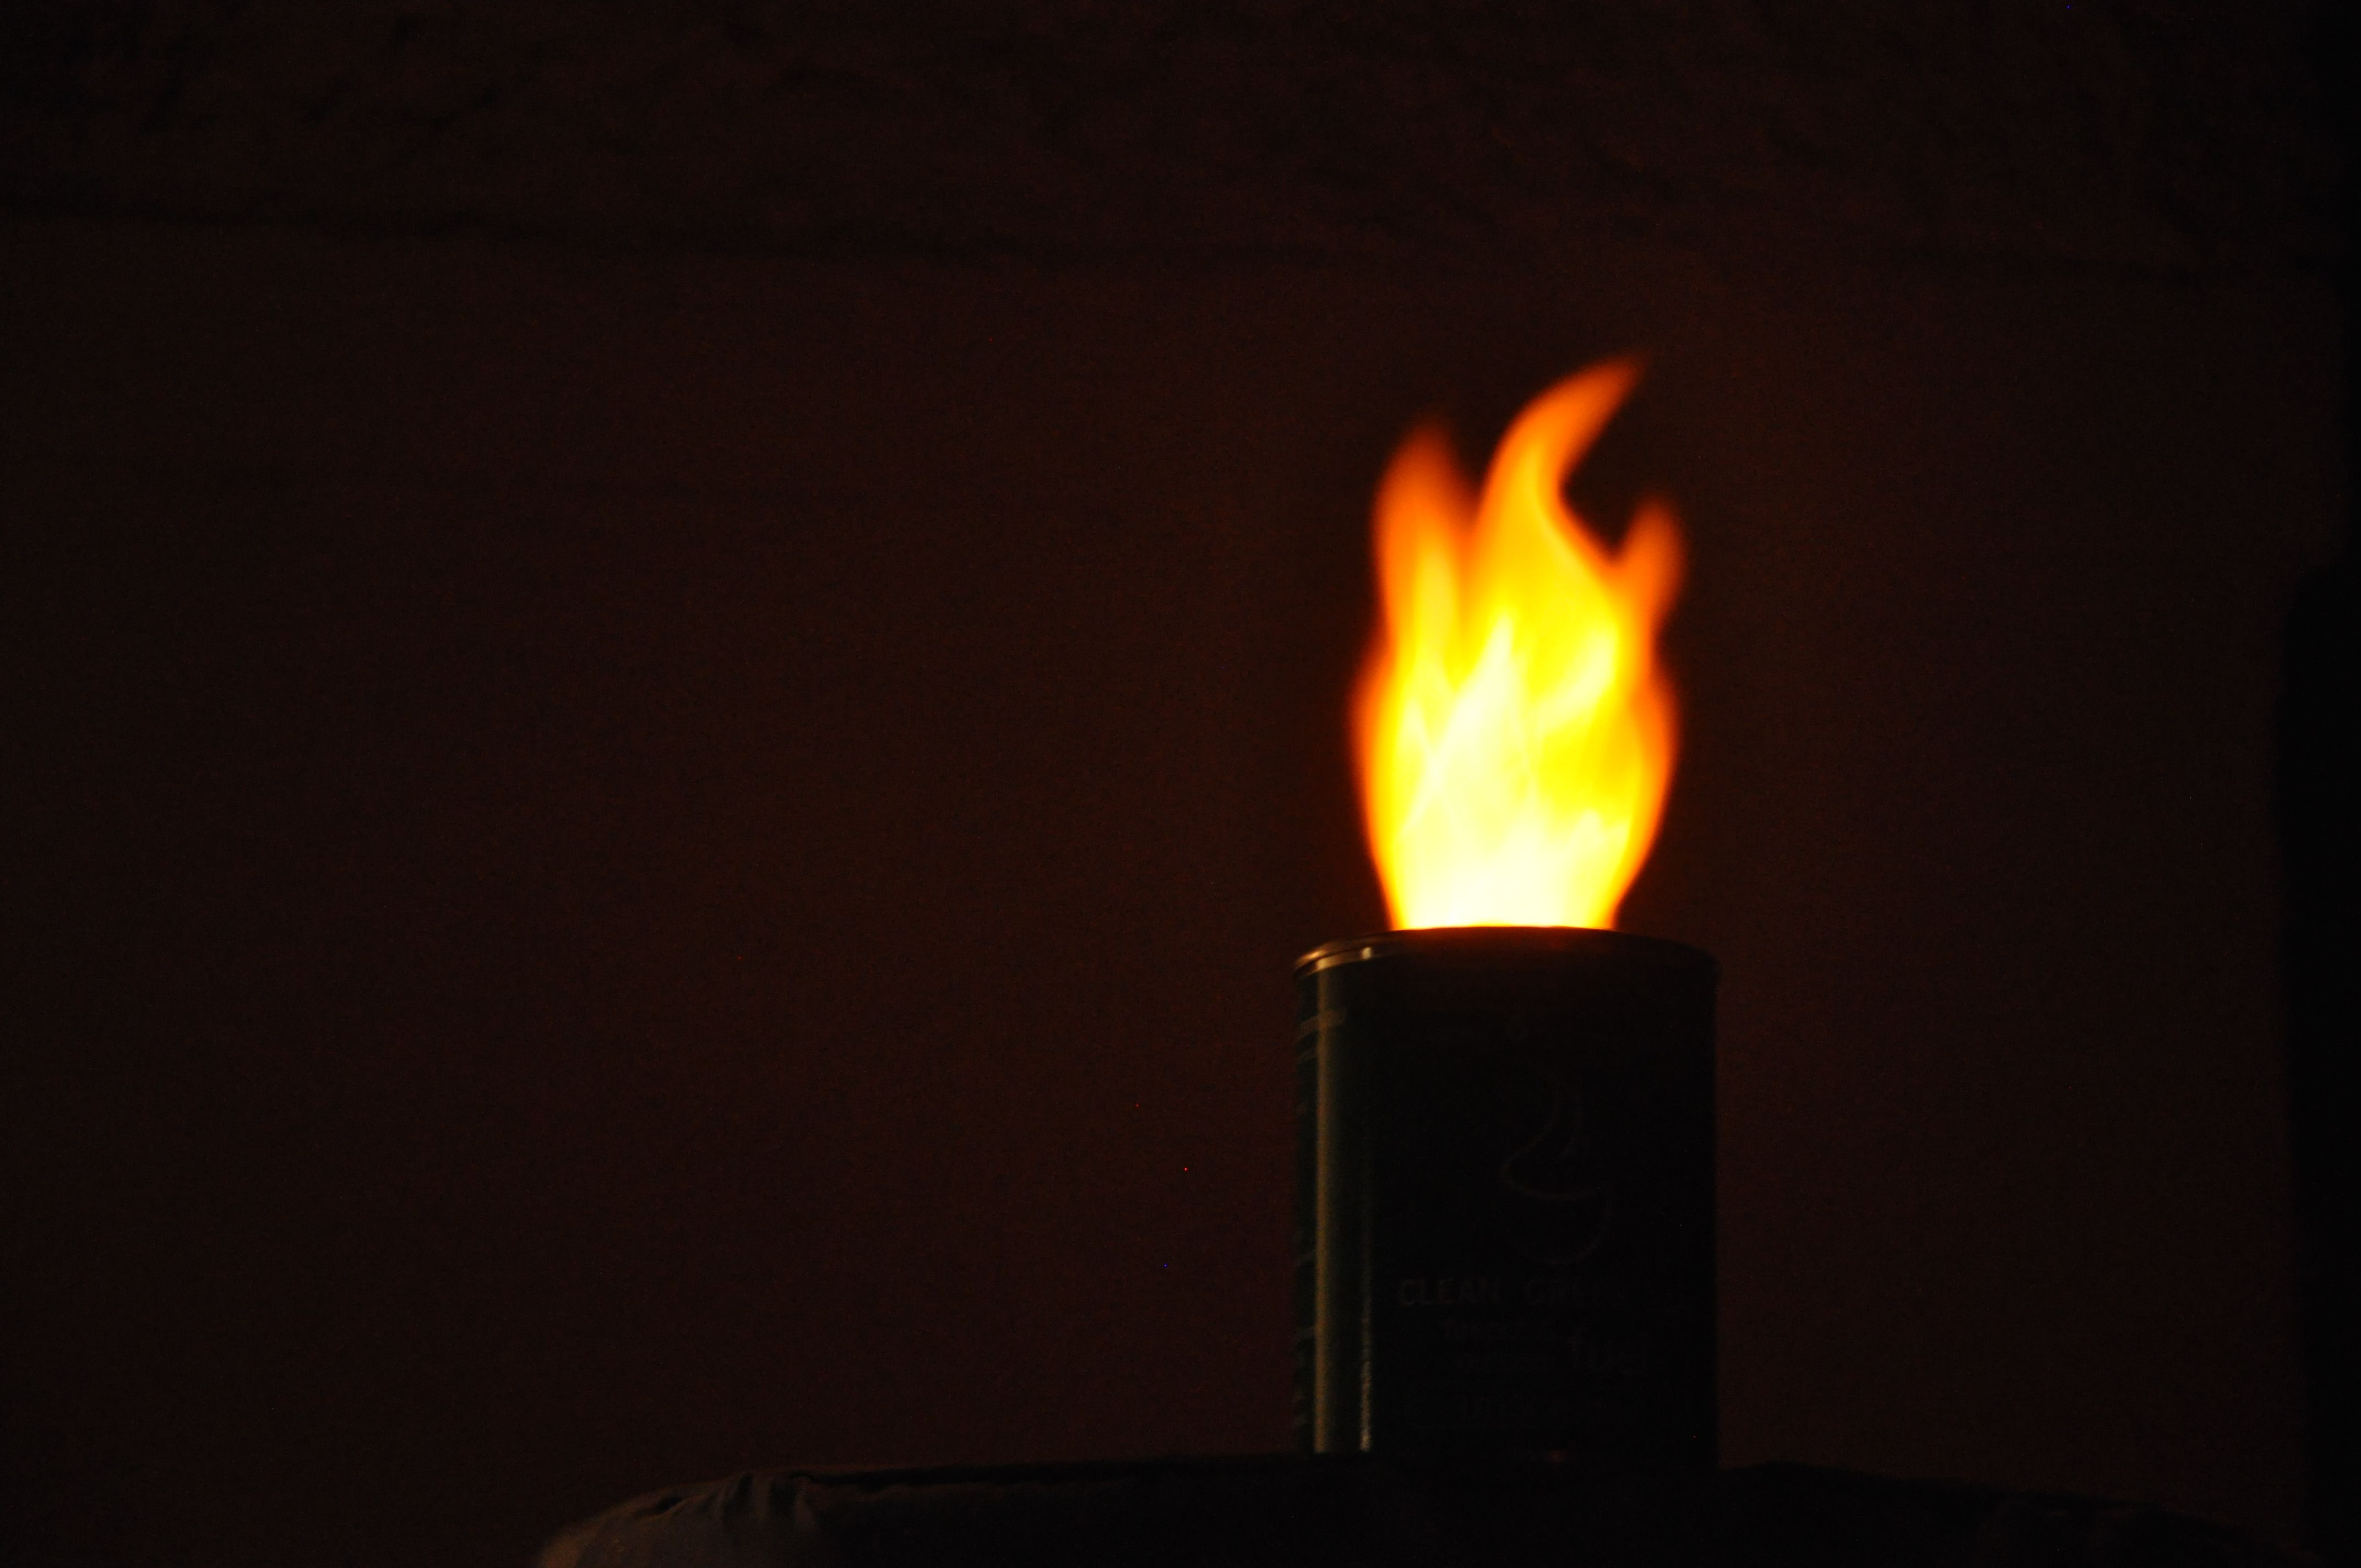 Low speed photography makes the flame in Flame in a Can look great at night!